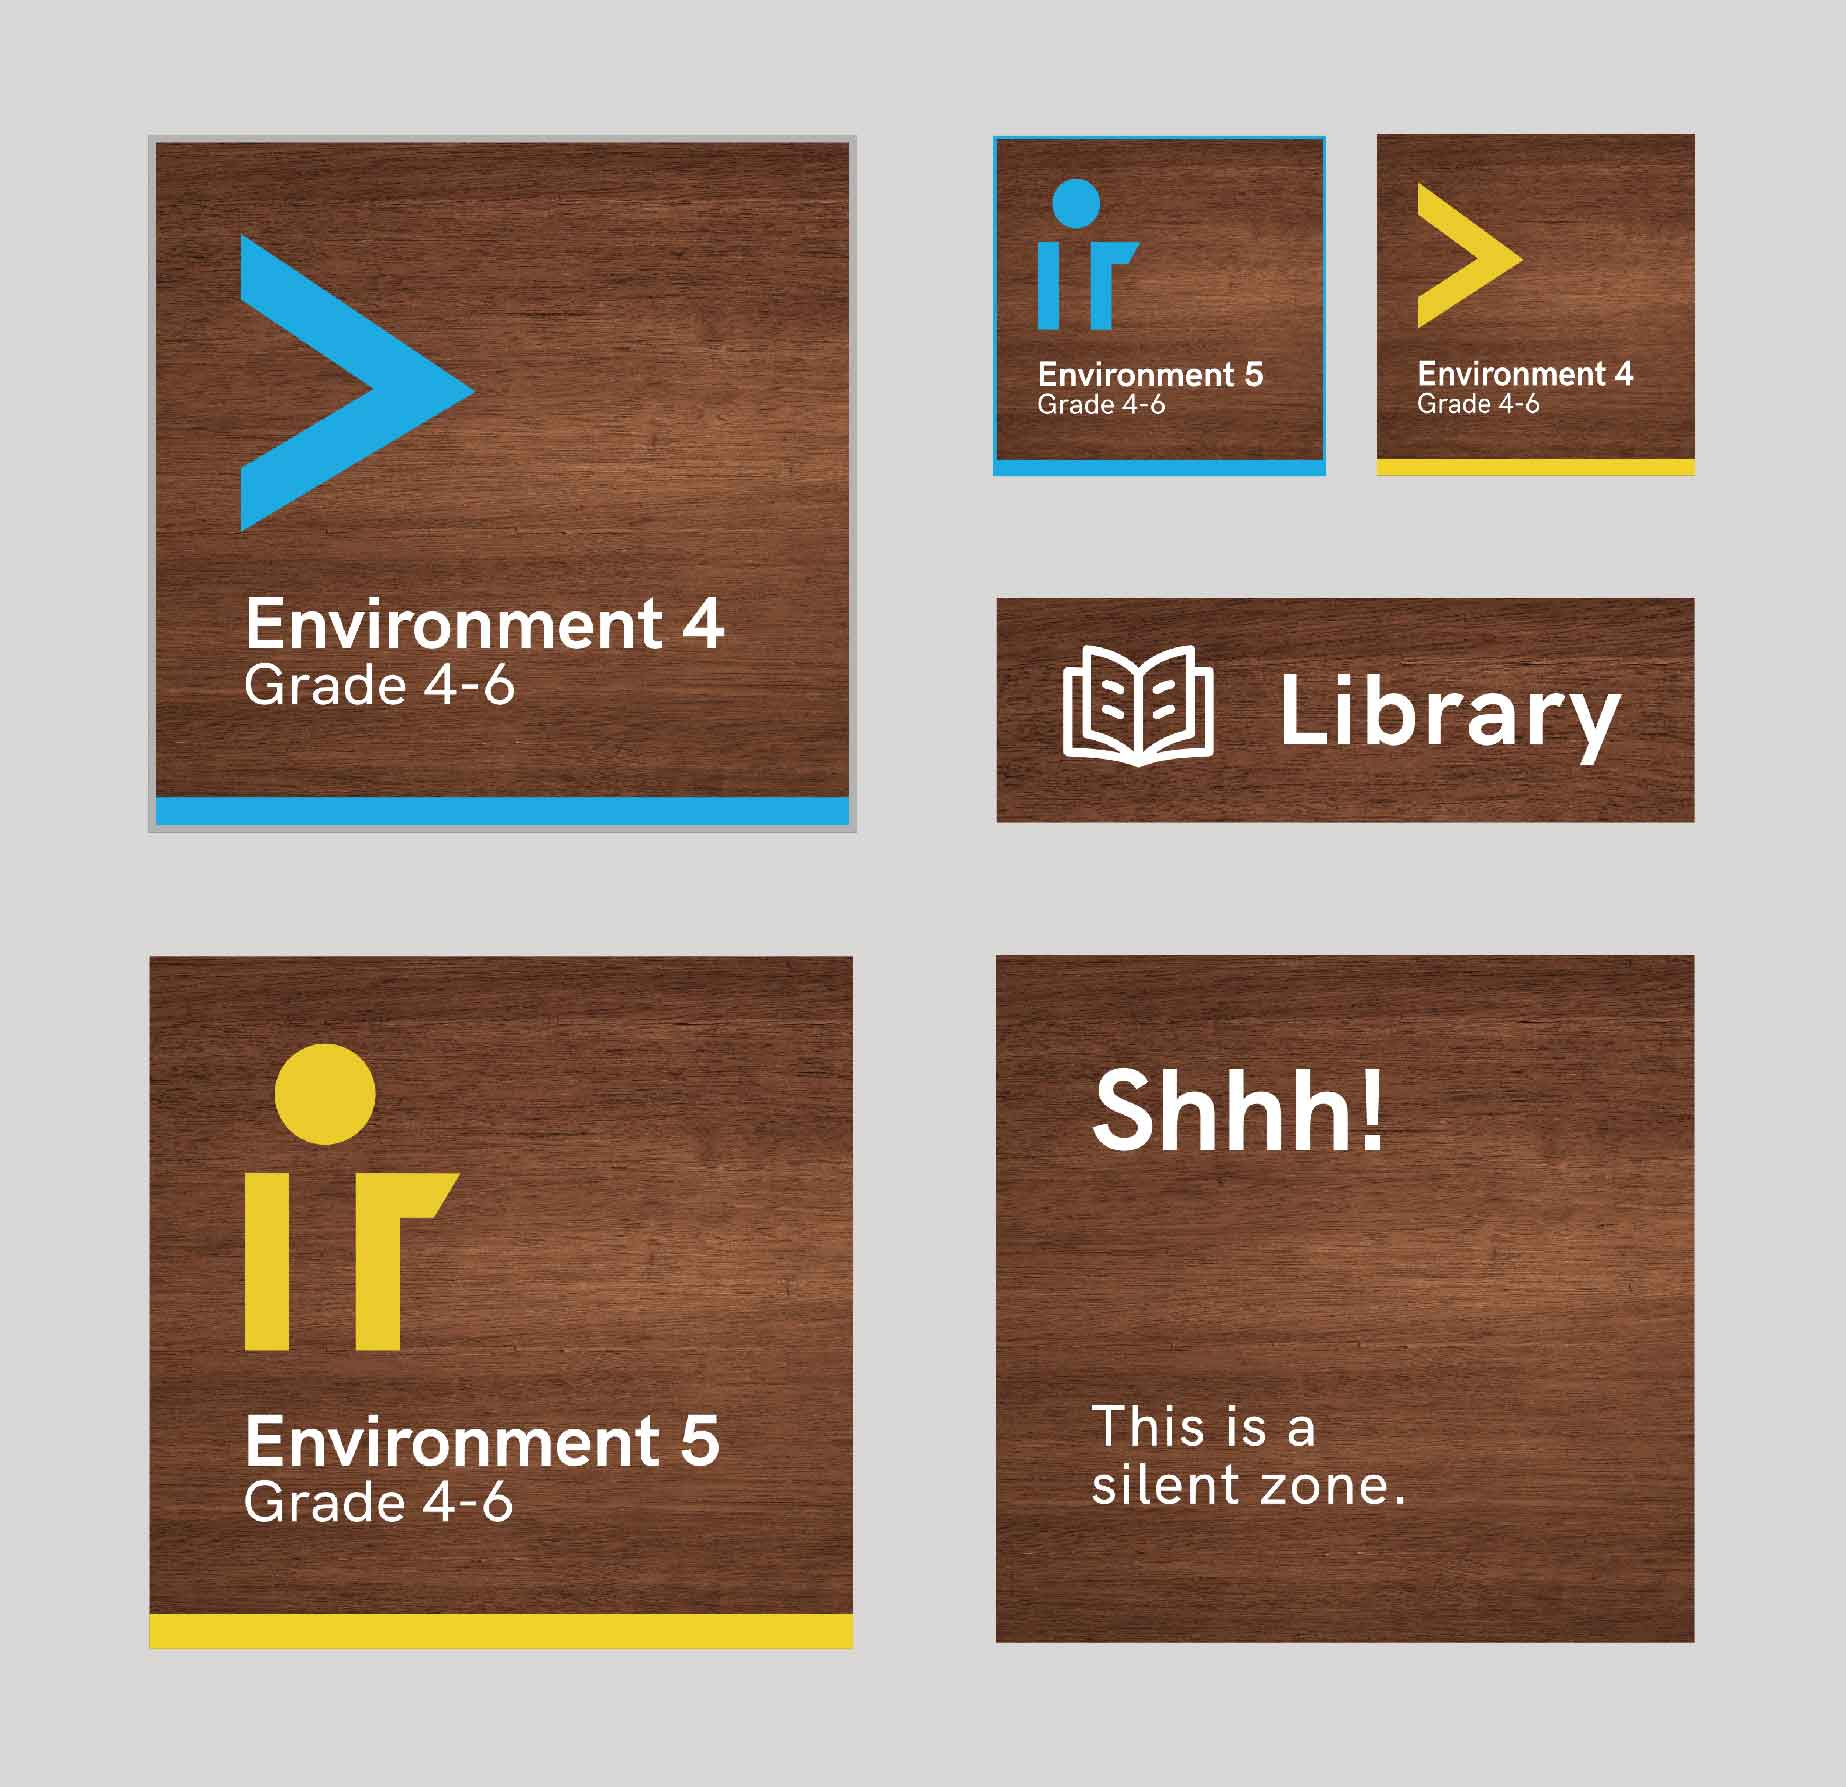 Education Airaa Rezoant Design Signage 10 11 11